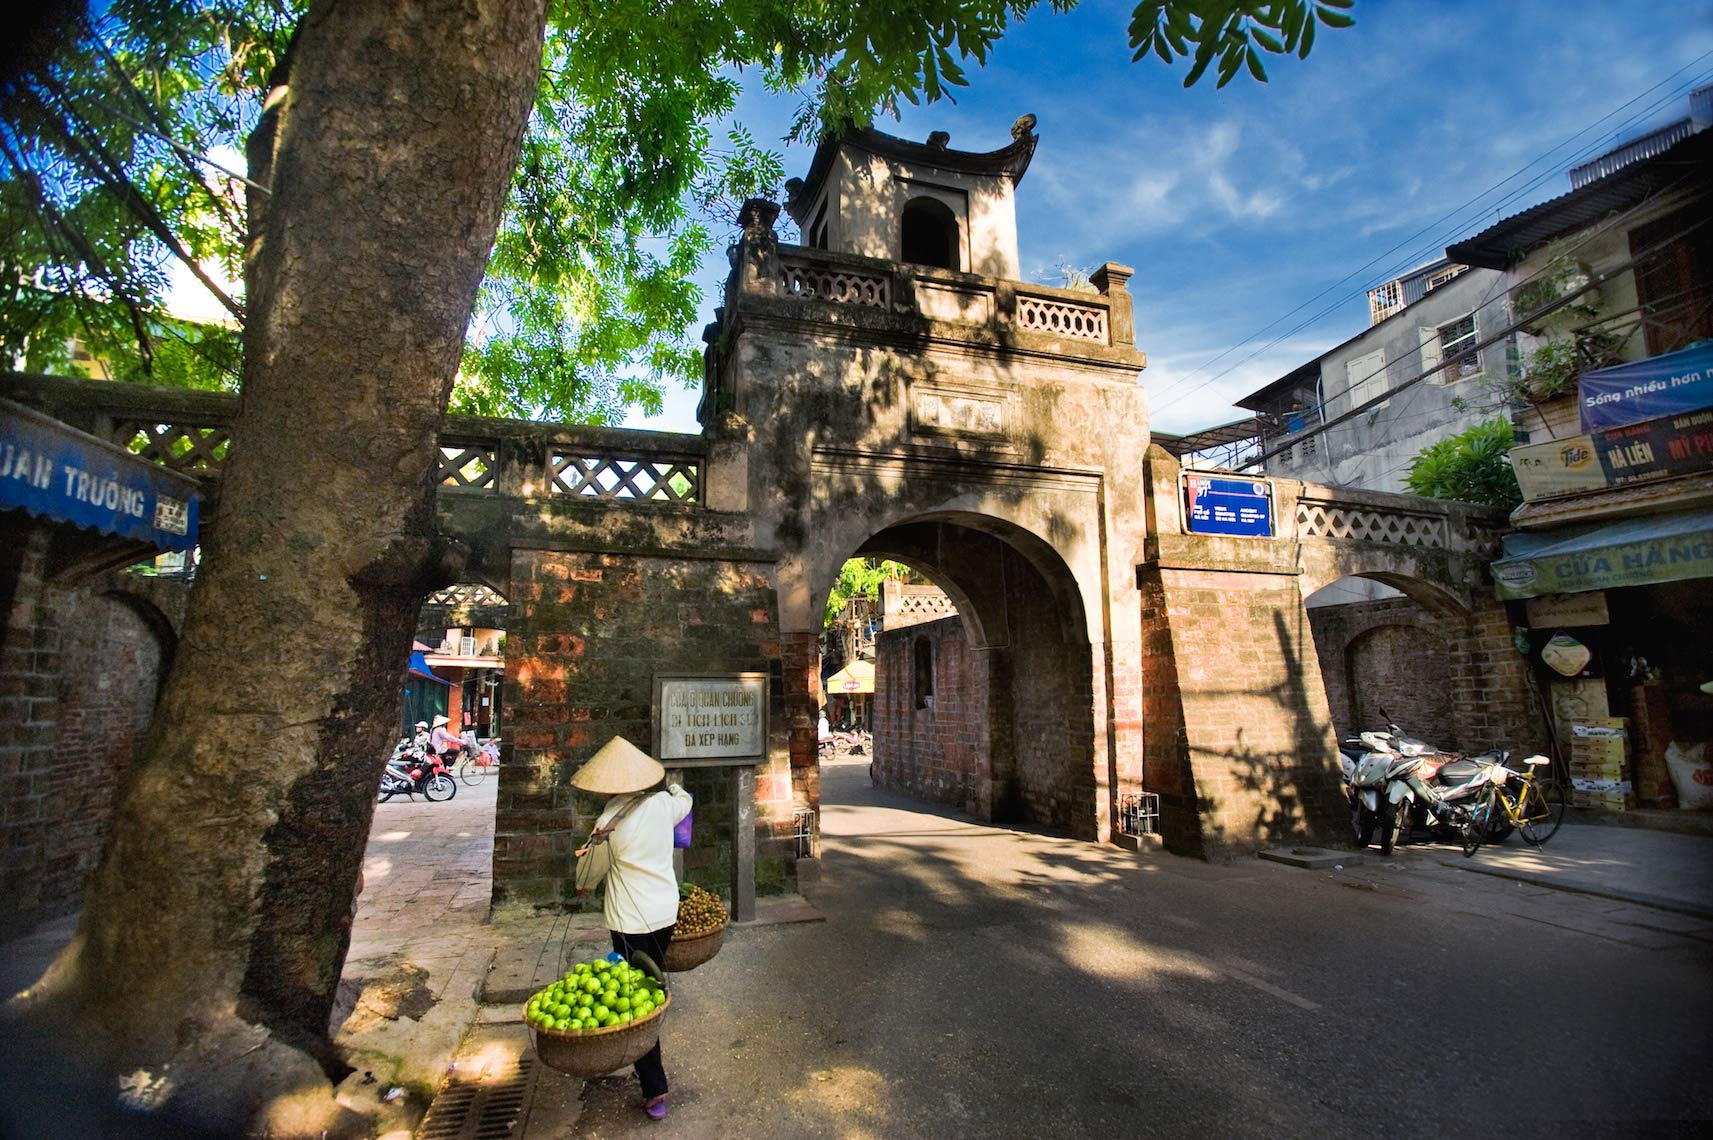 O Quan Chuong gate at Hanoi